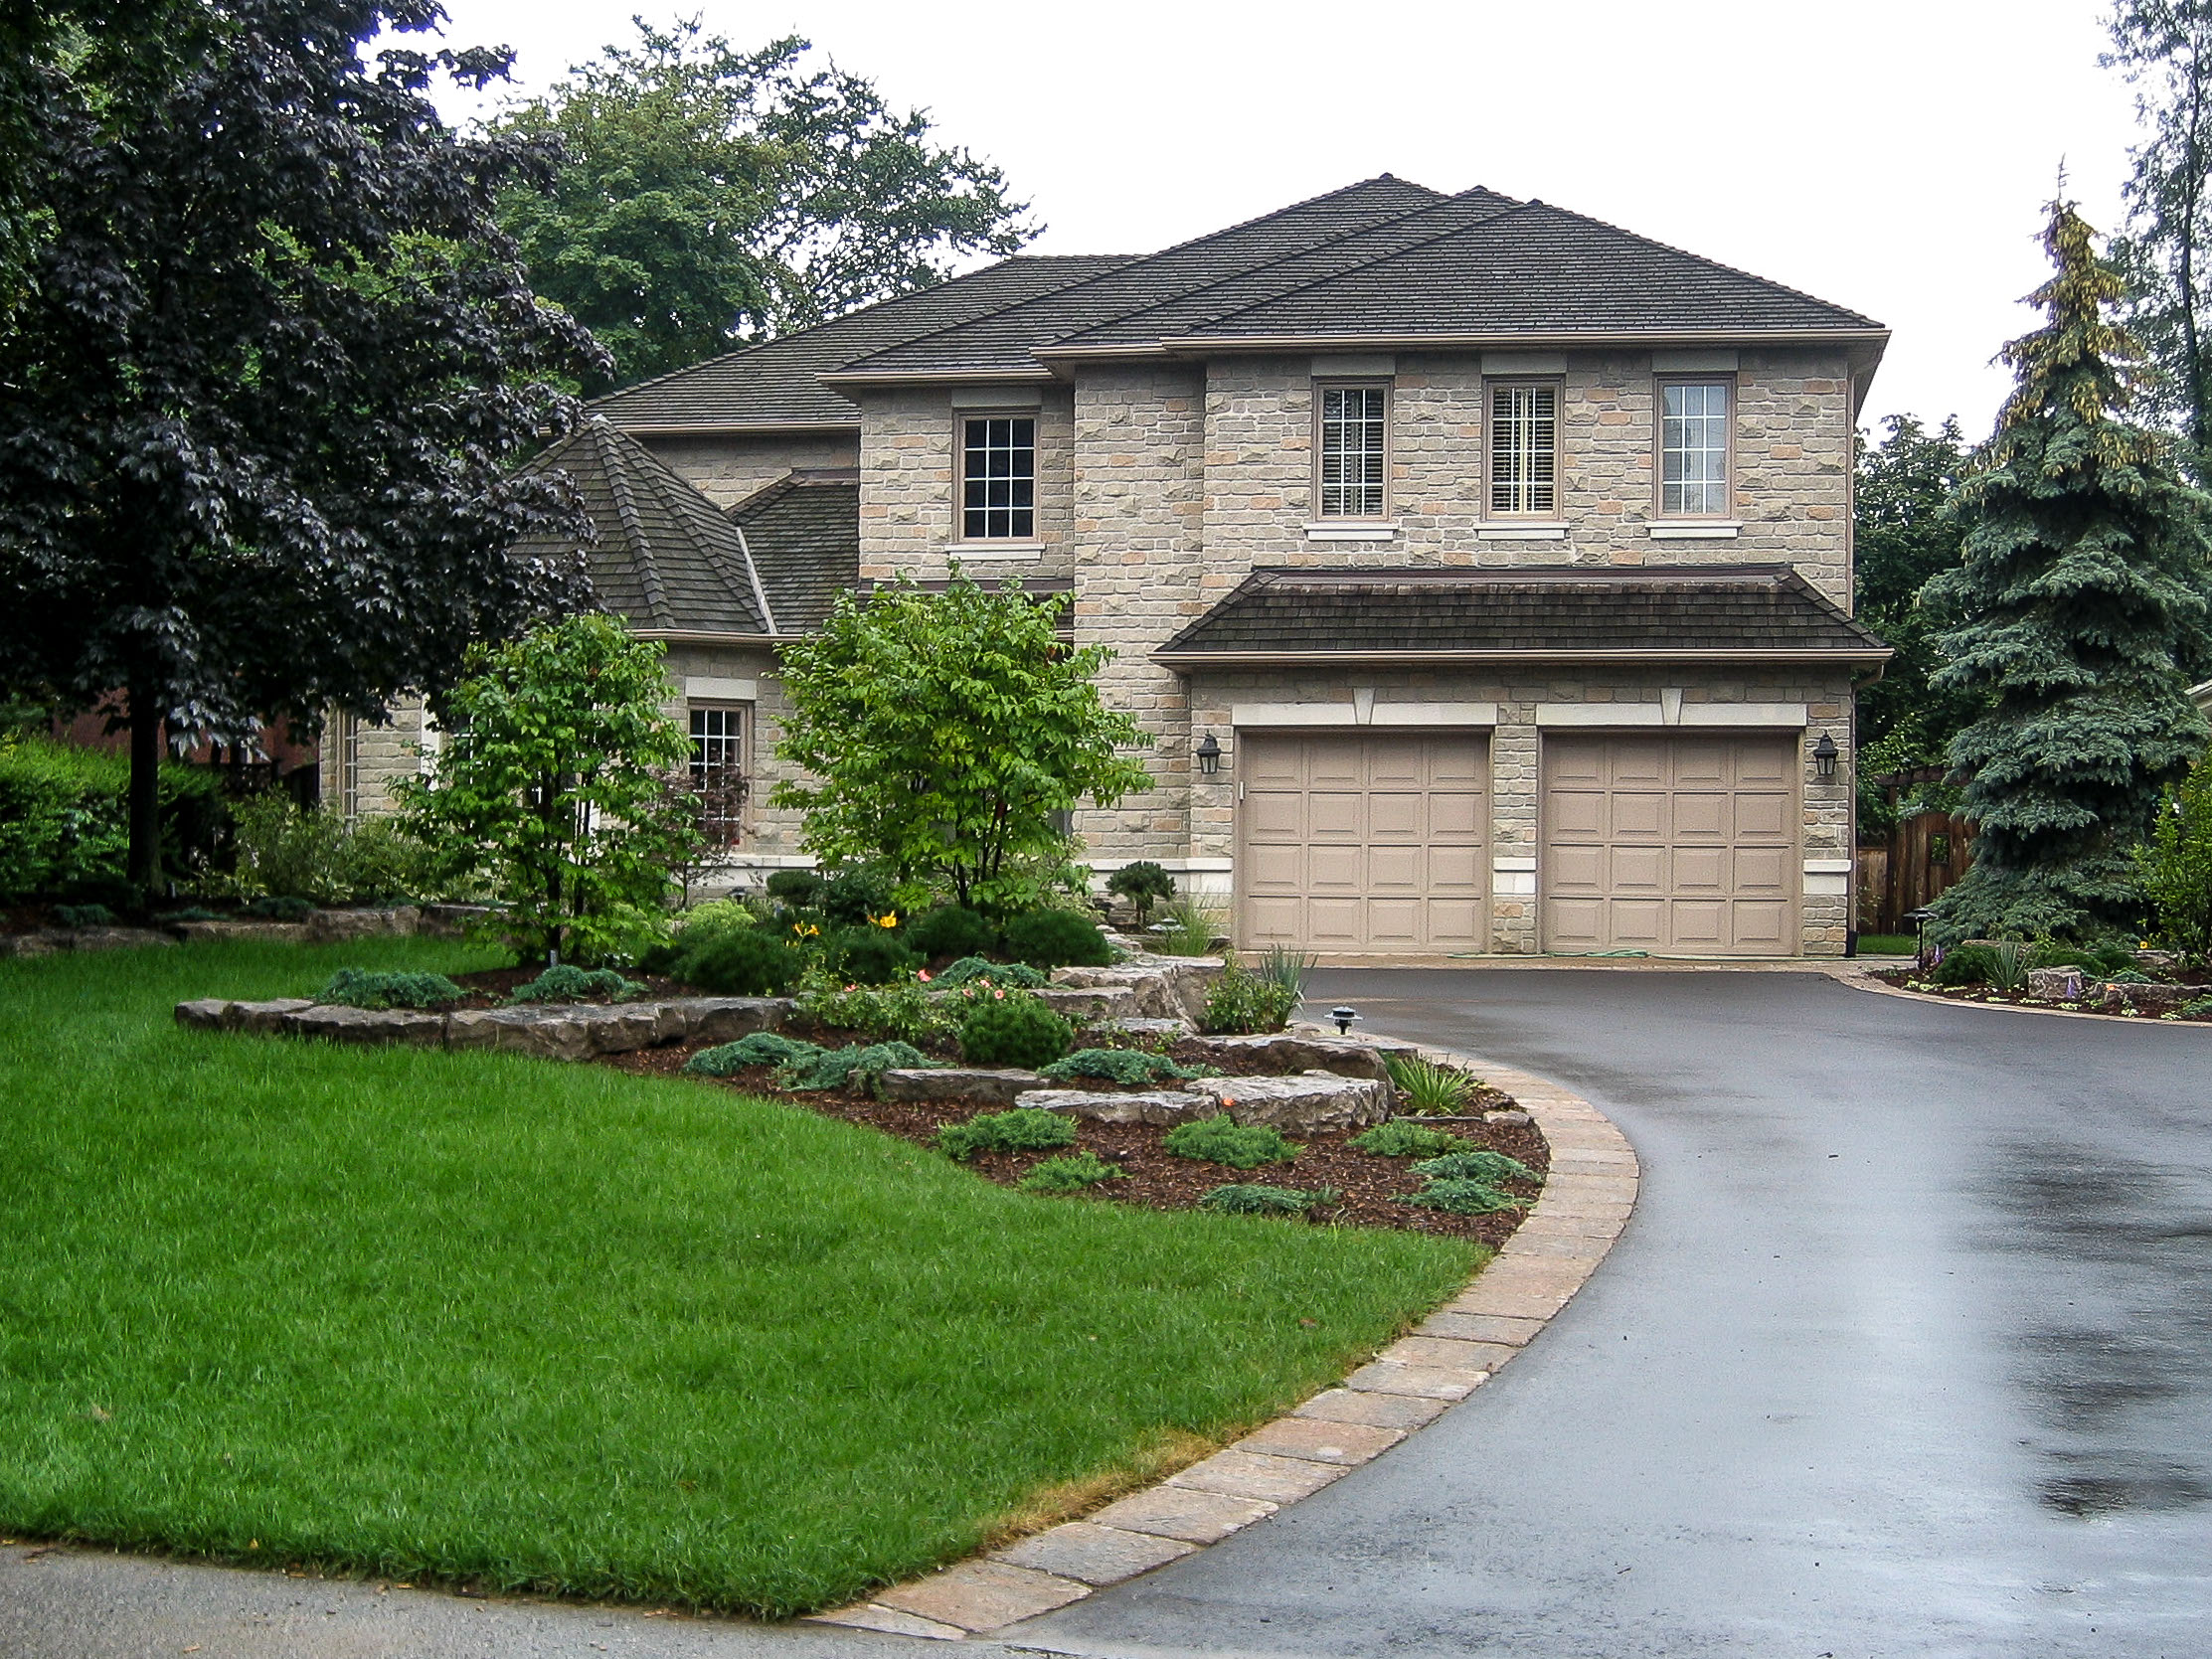 Landscape image residential landscape design and construction serving mississauga oakville